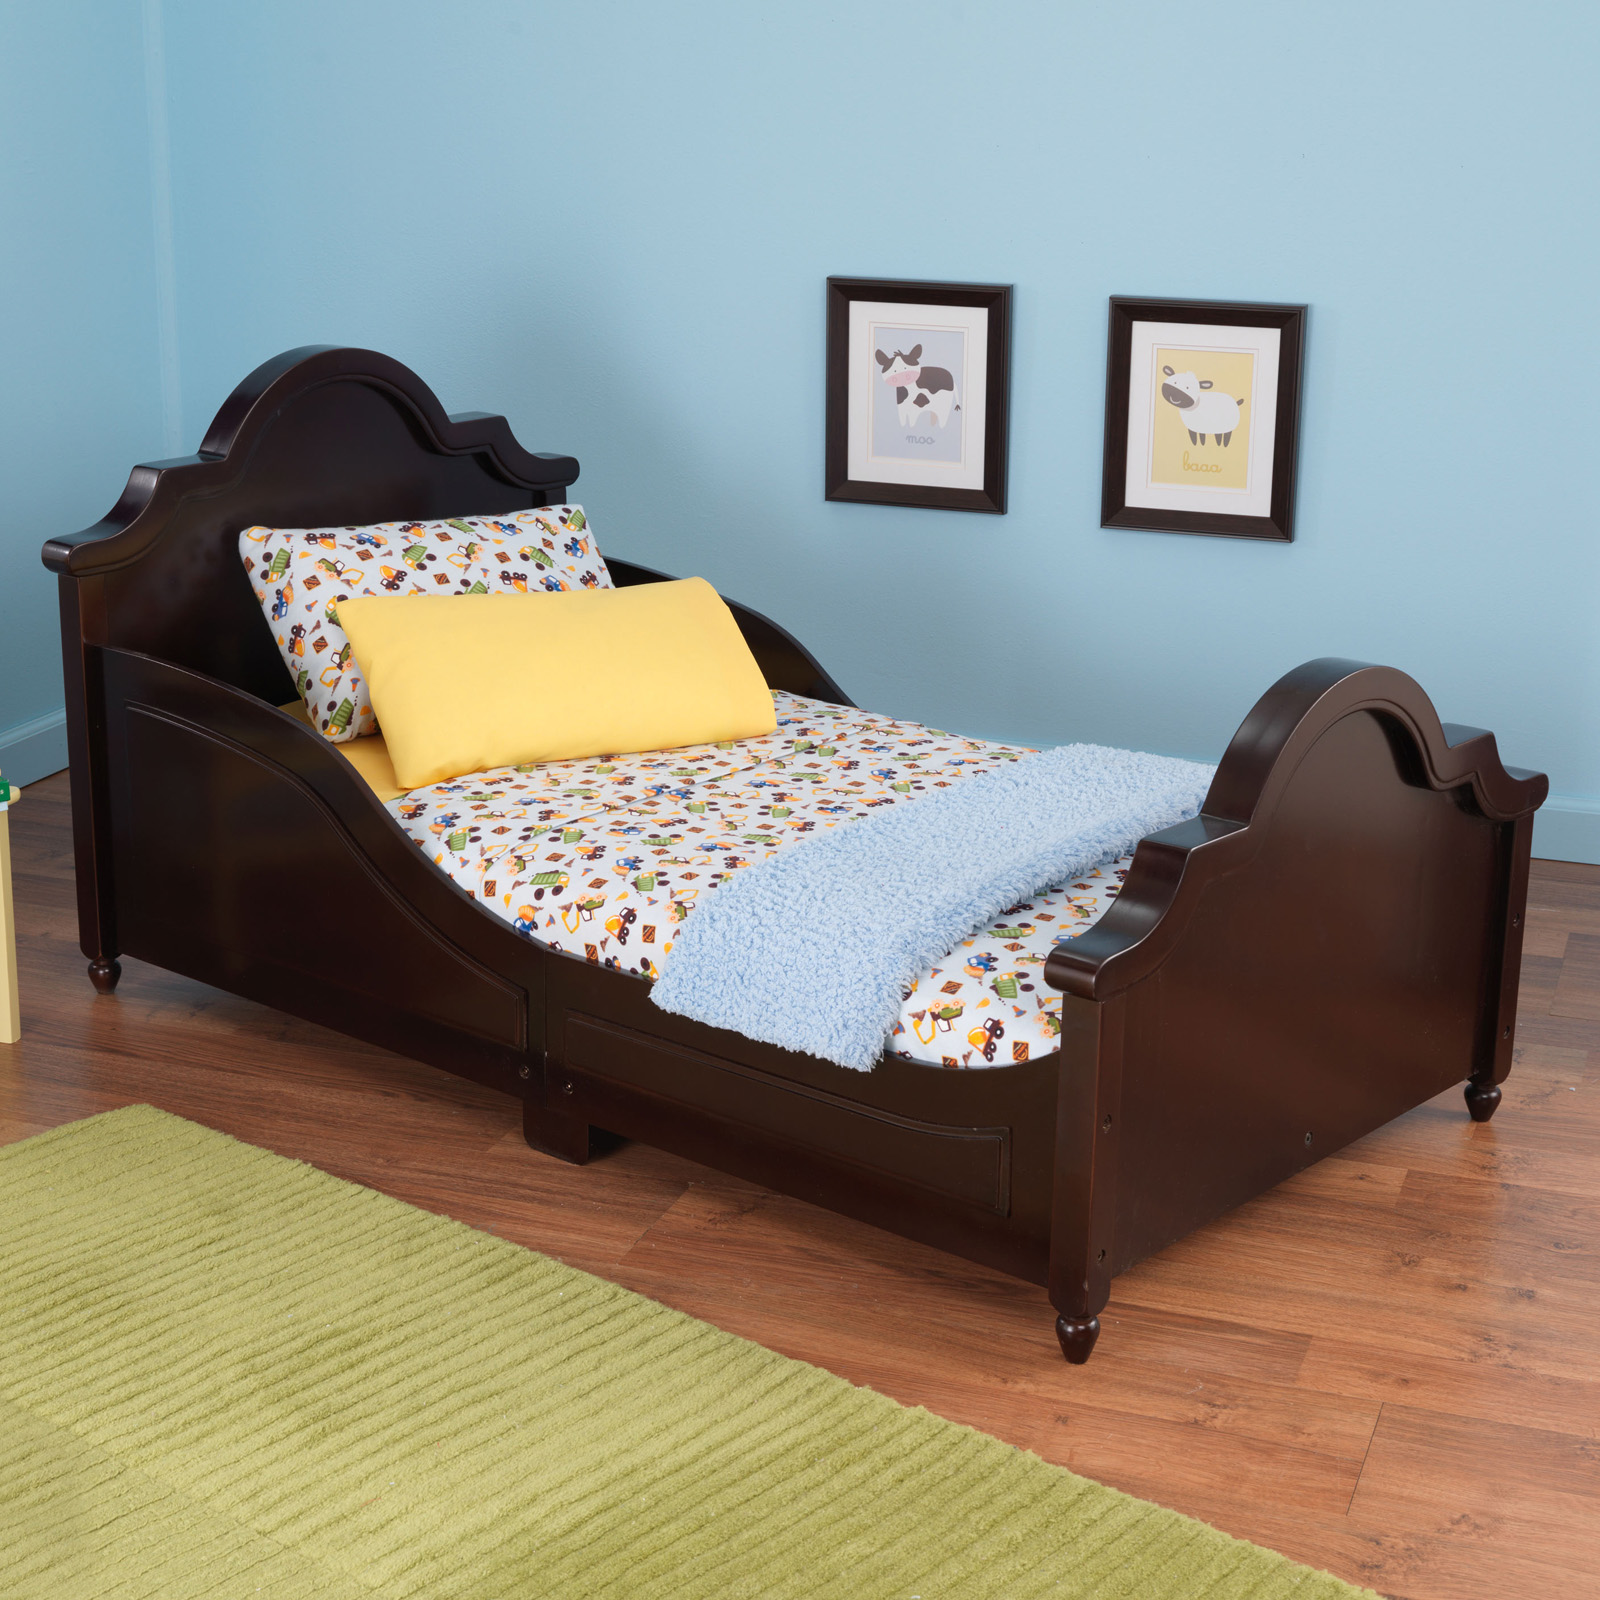 Kidkraft Raleigh Toddler Bed Espresso